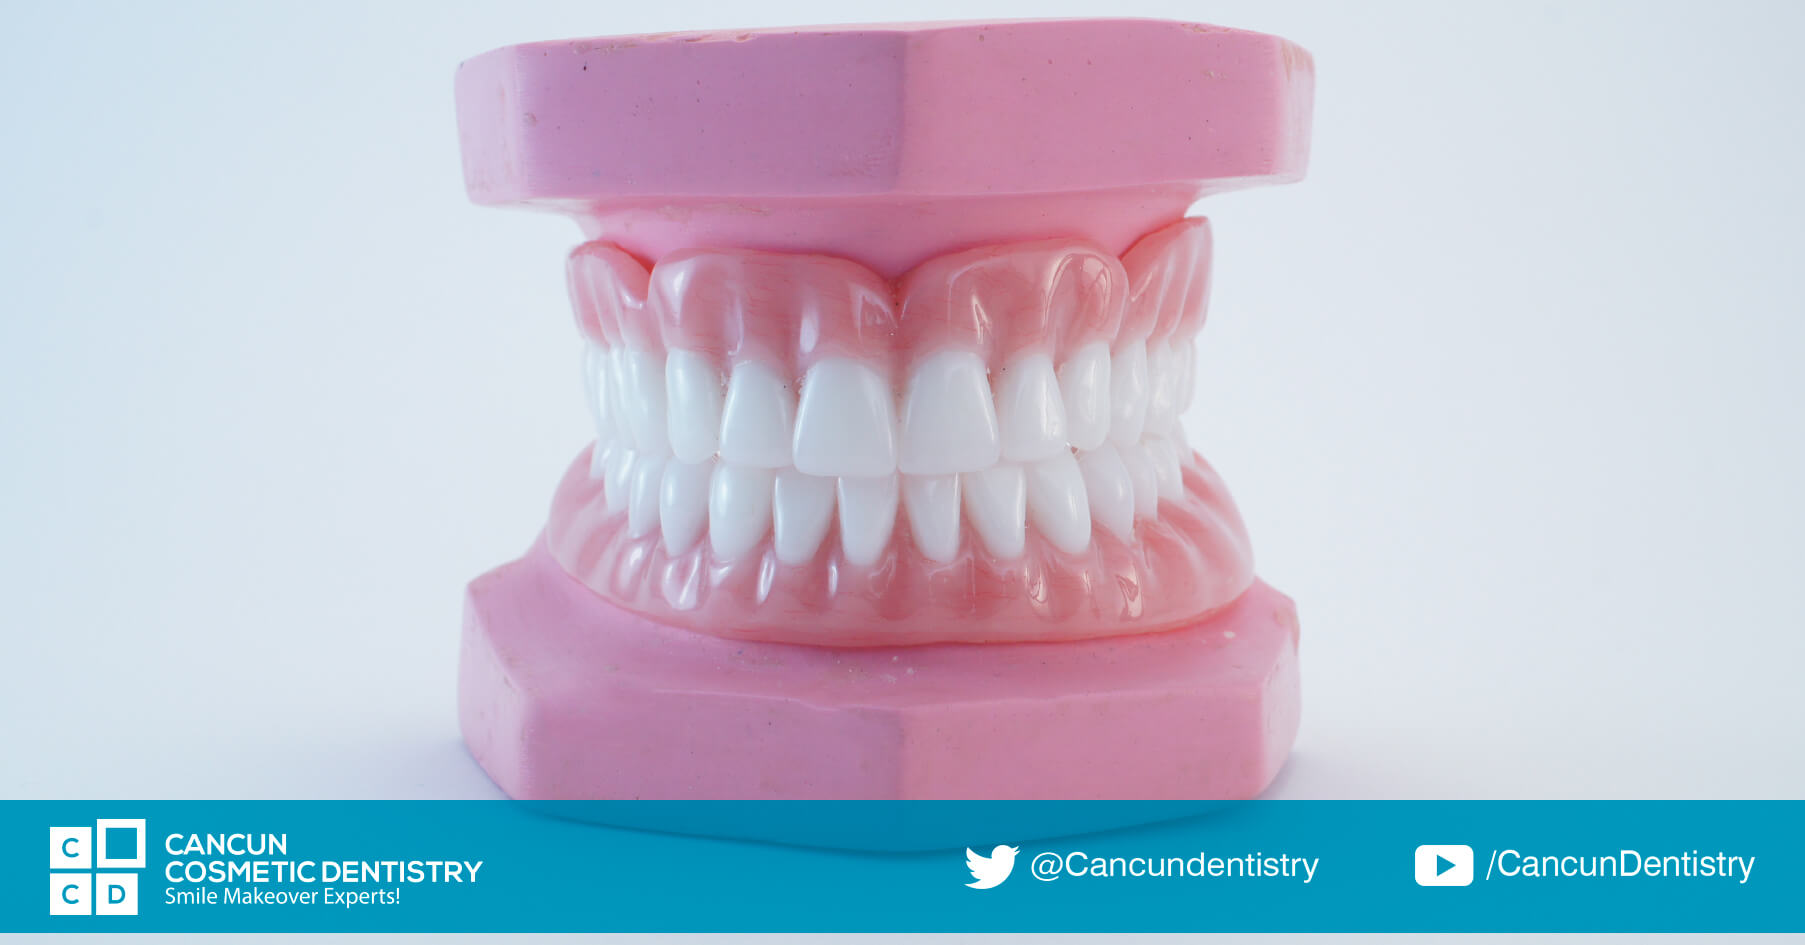 Snap in Dentures is your dental solution! Cancun Cosmetic Dentistry